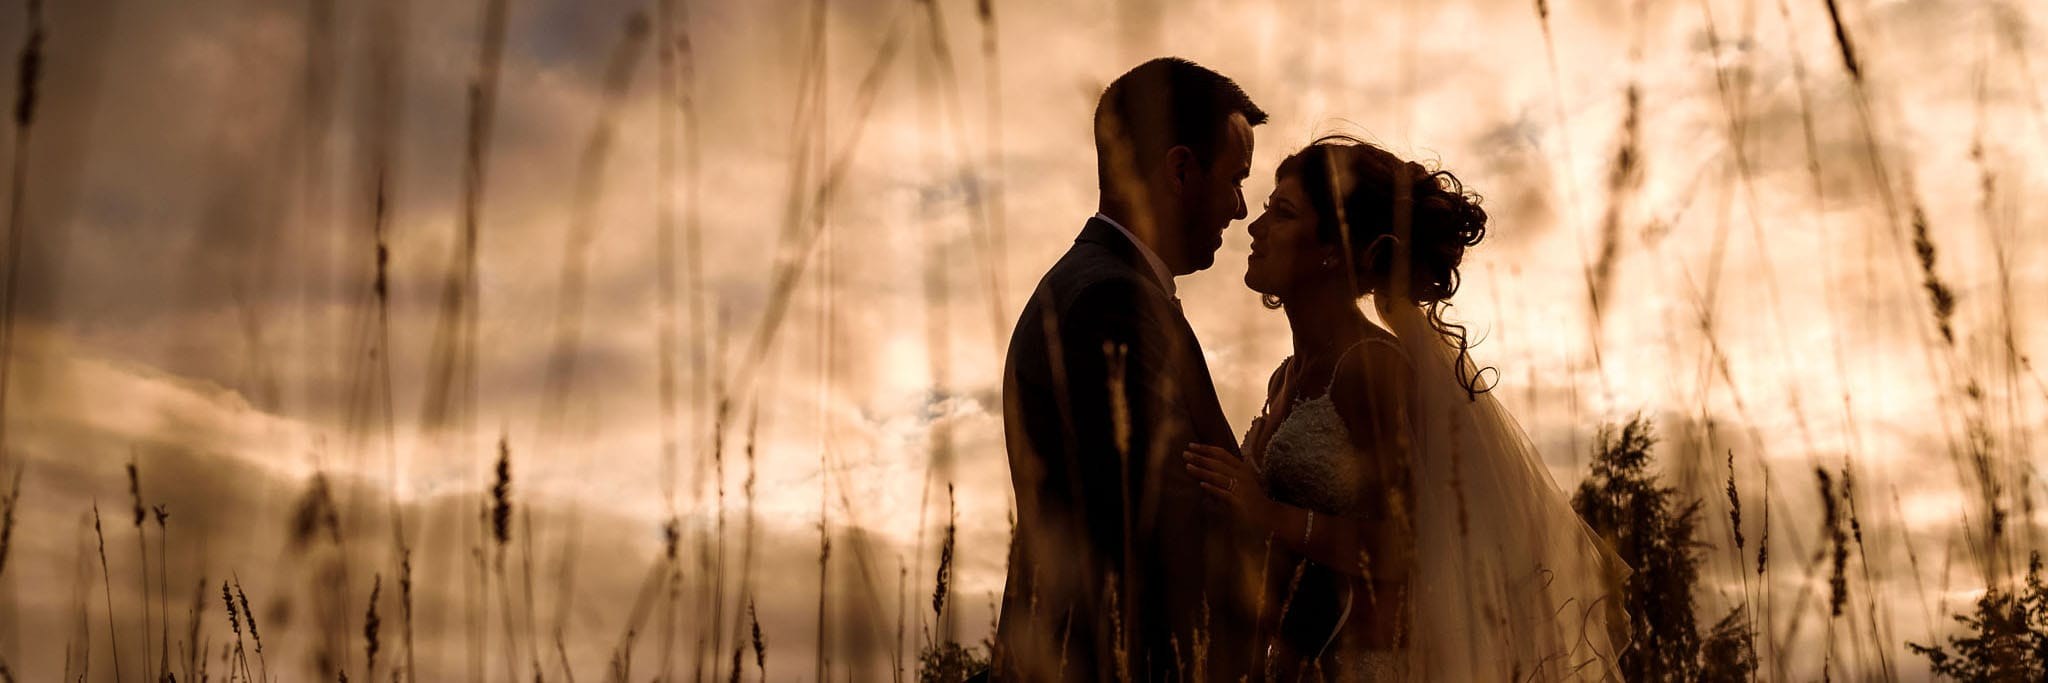 silhouette of the bride and groom in a field of long grass